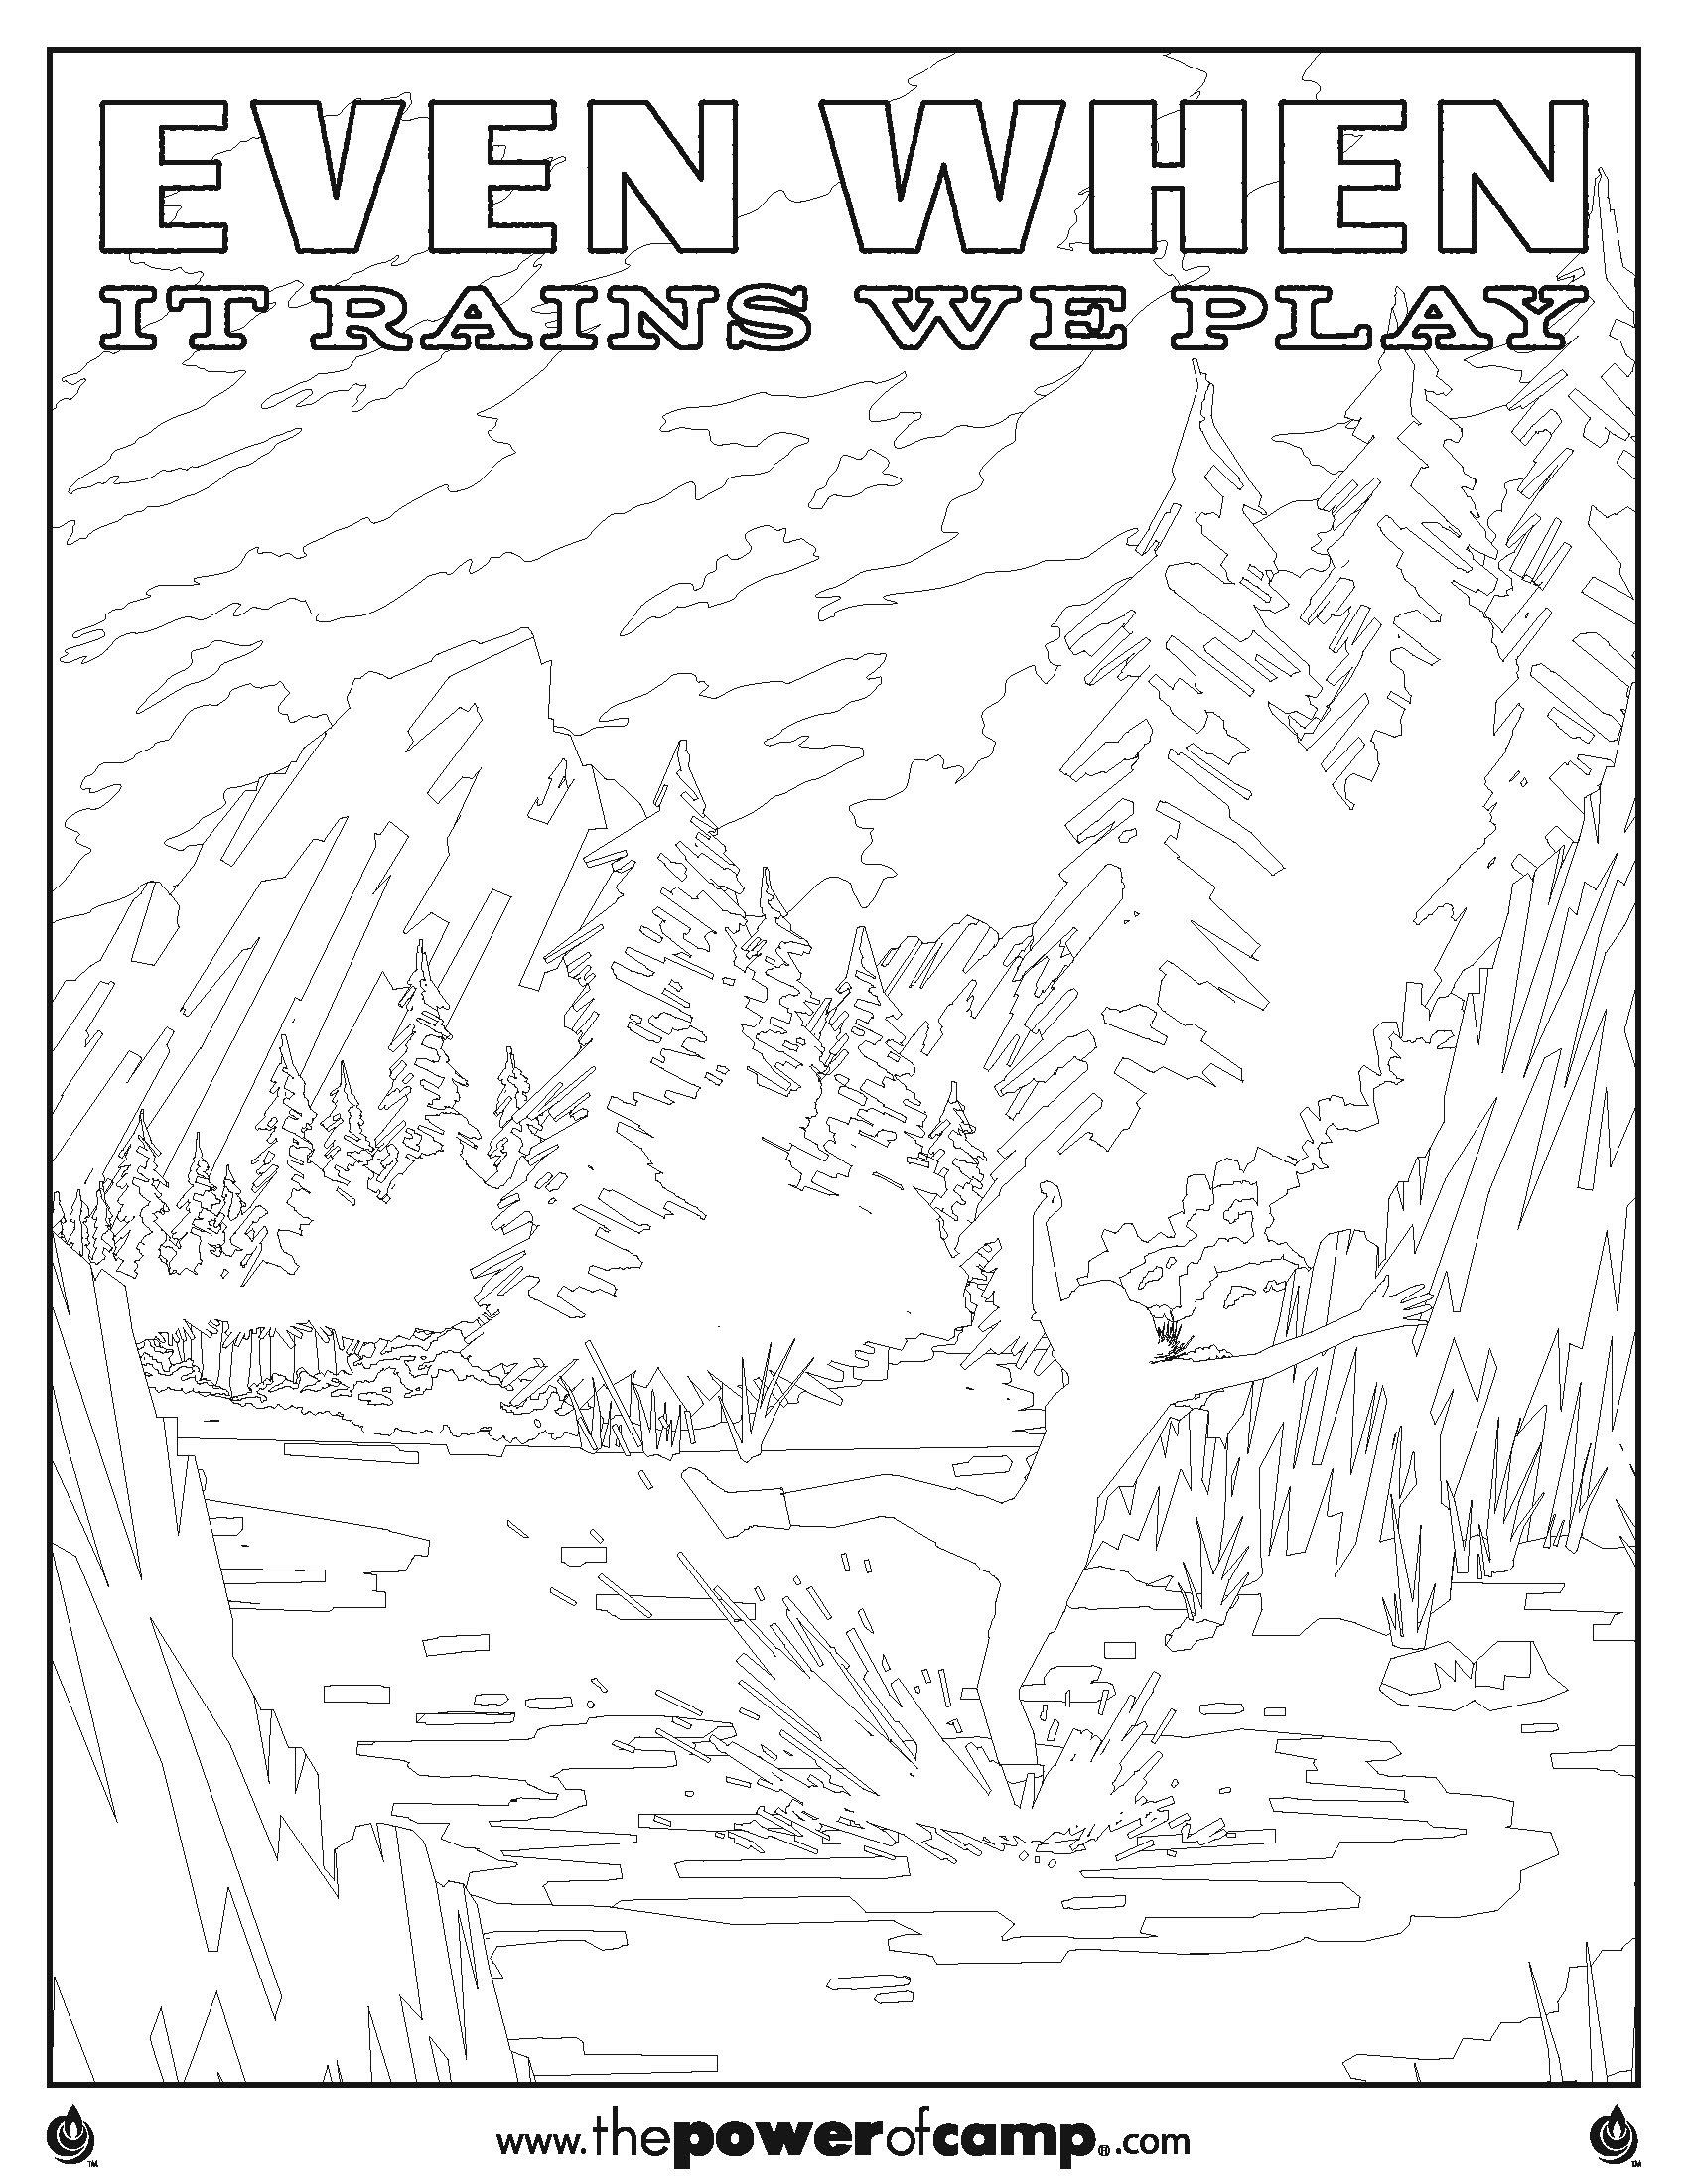 Join The Coloring Craze